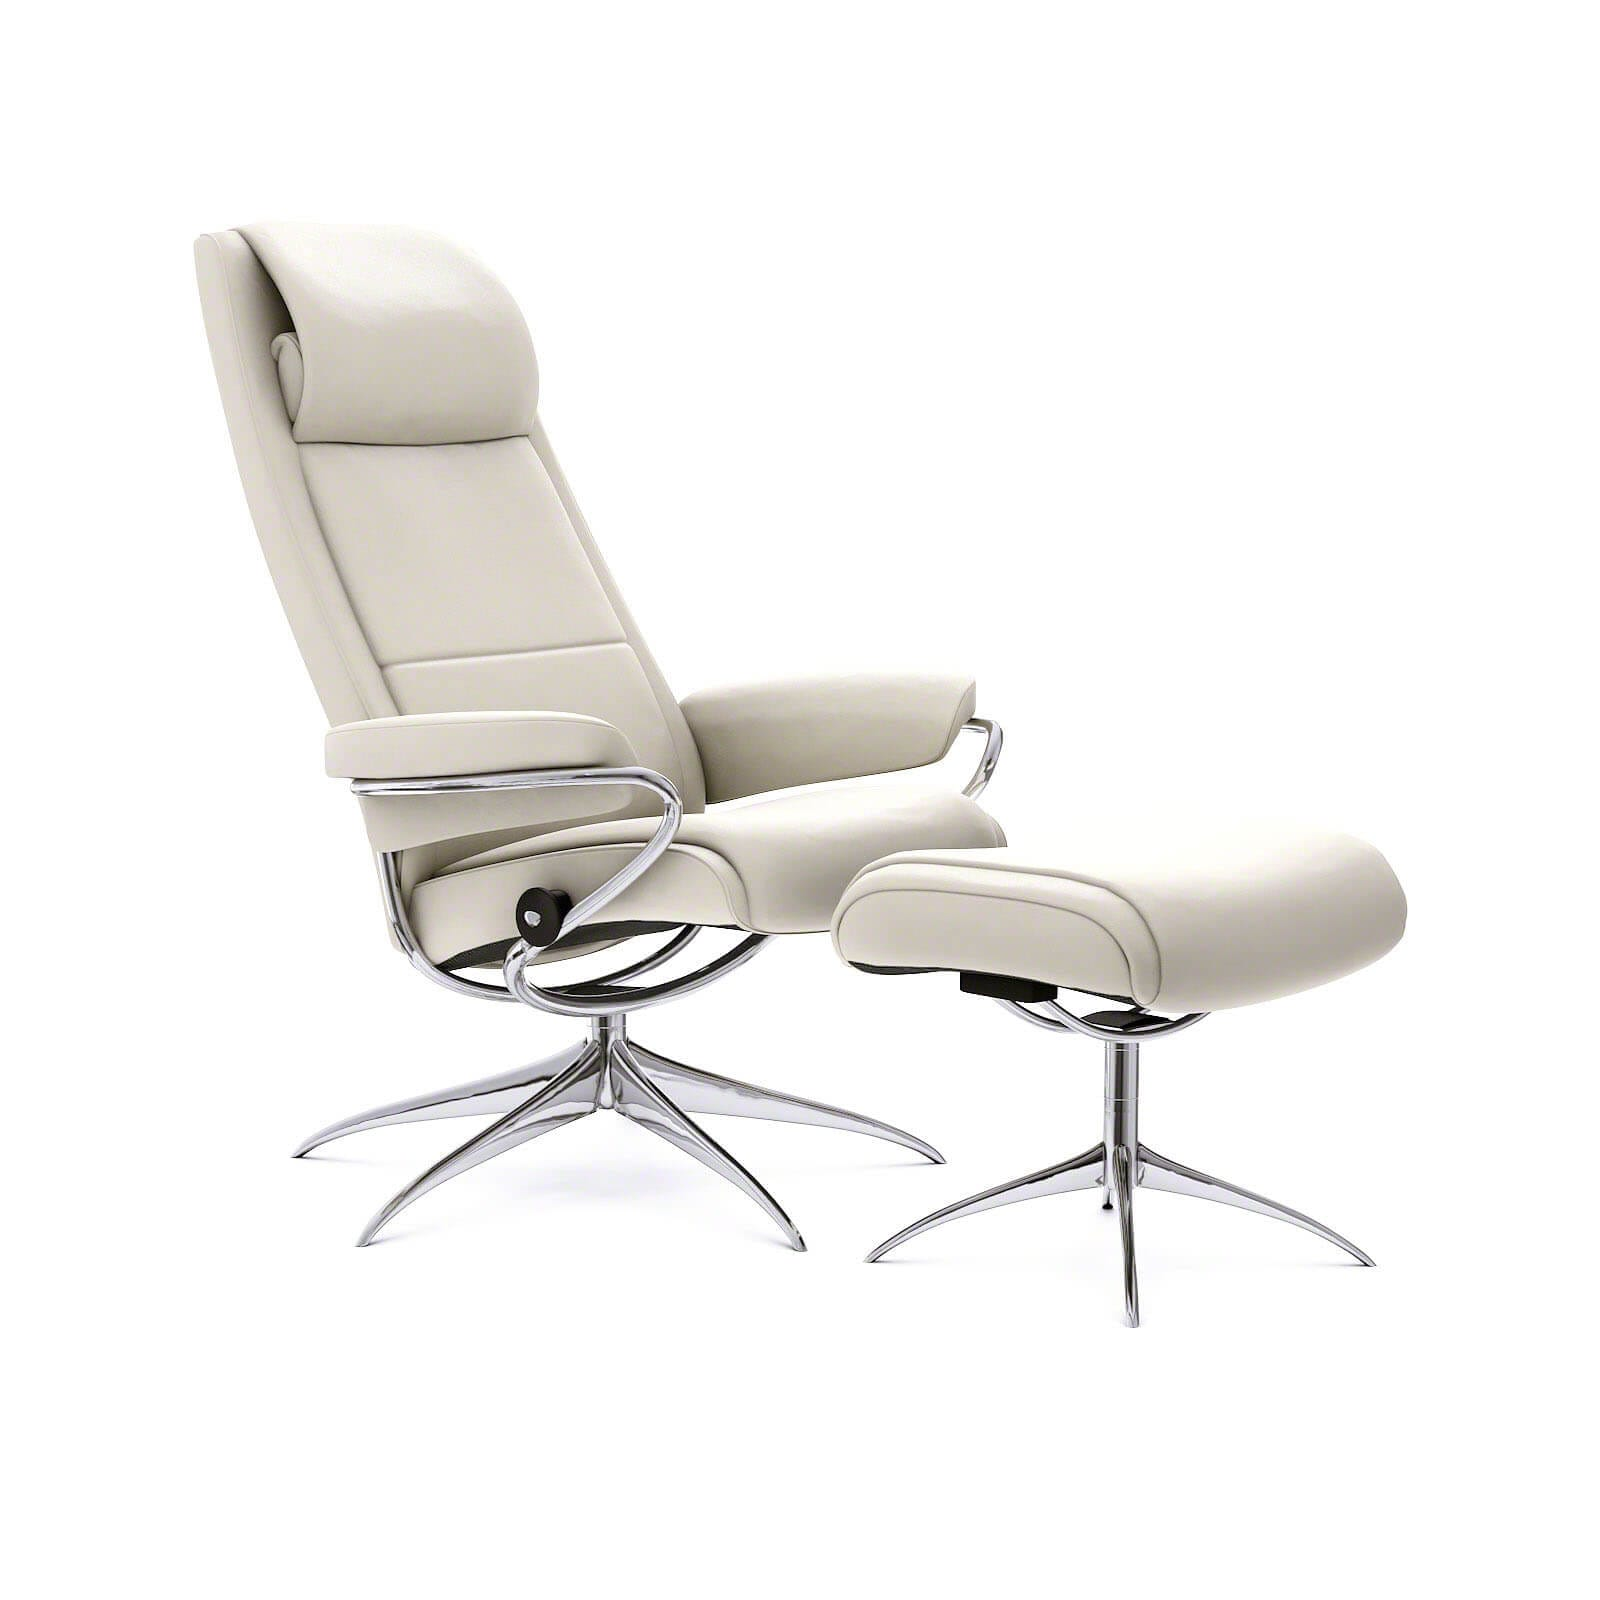 Stressless Sessel Paris High Back Stressless Ledersessel Paris Hohe Lehne Paloma Vanilla